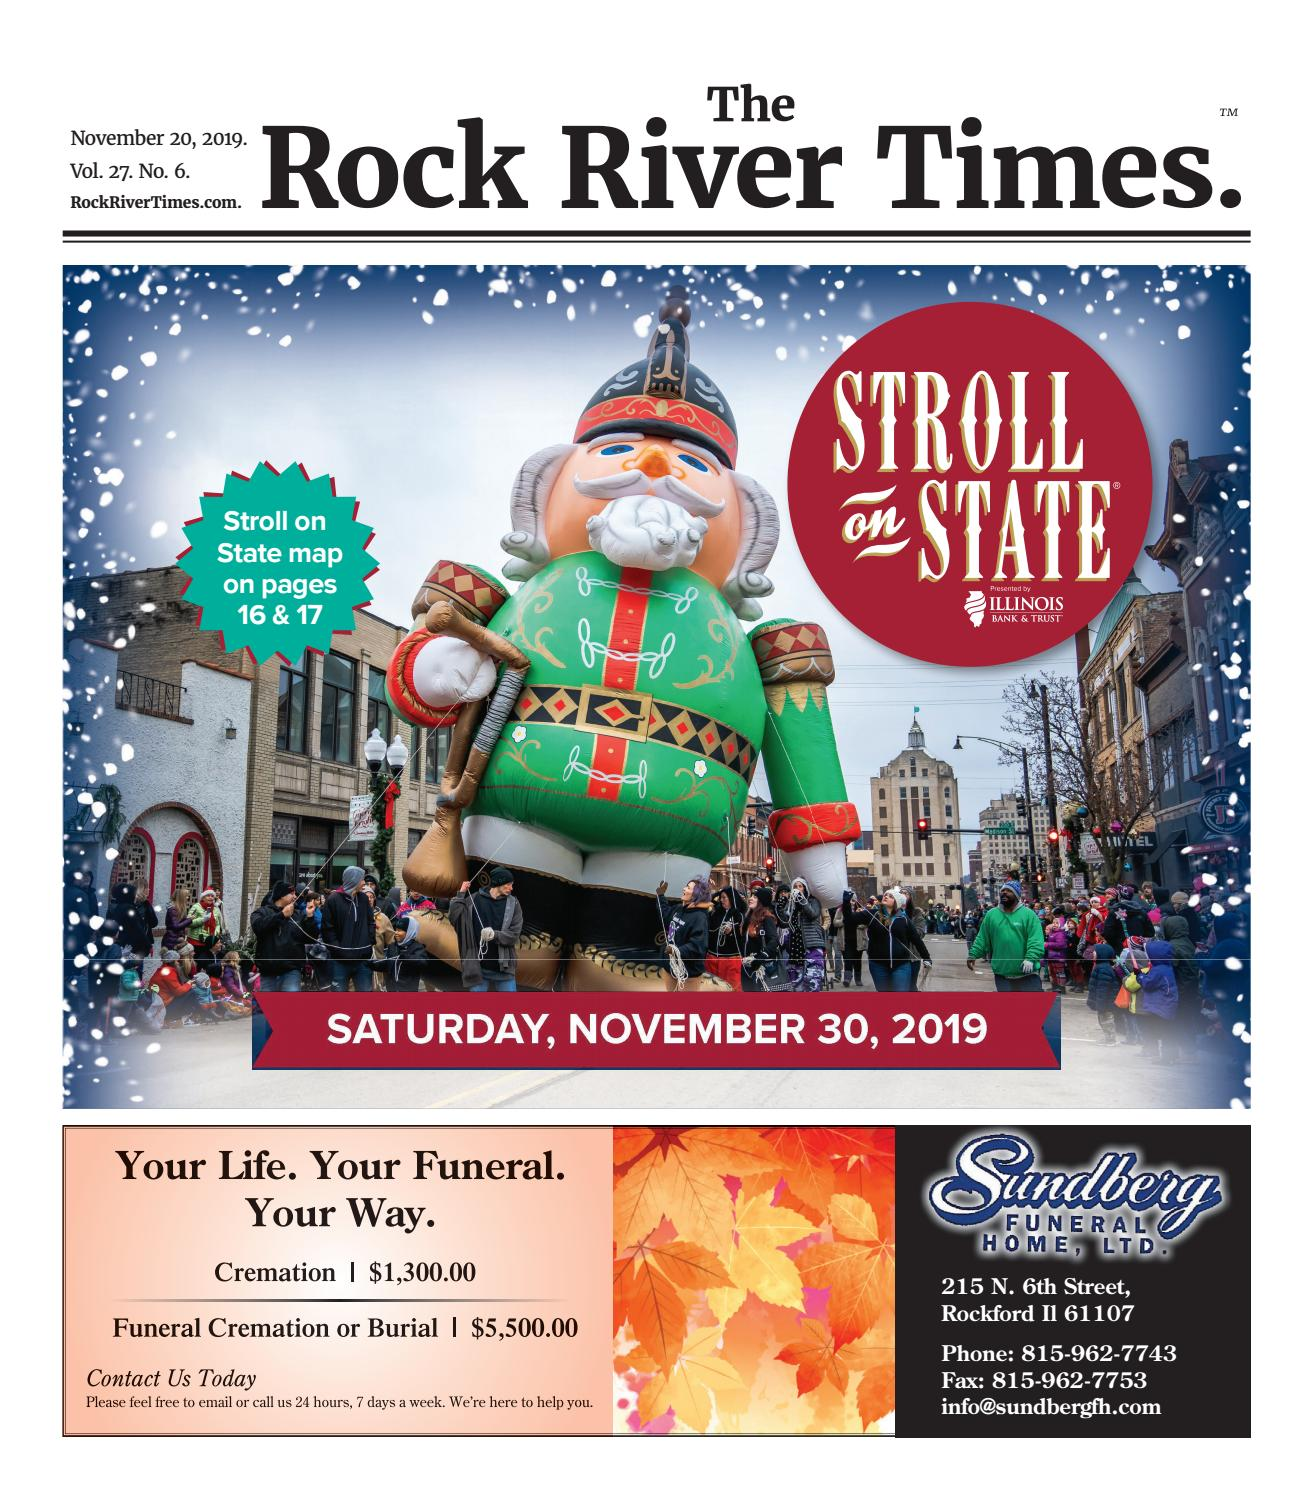 The Rock River Times November 20 2019 By Rockrivertimes7 Issuu